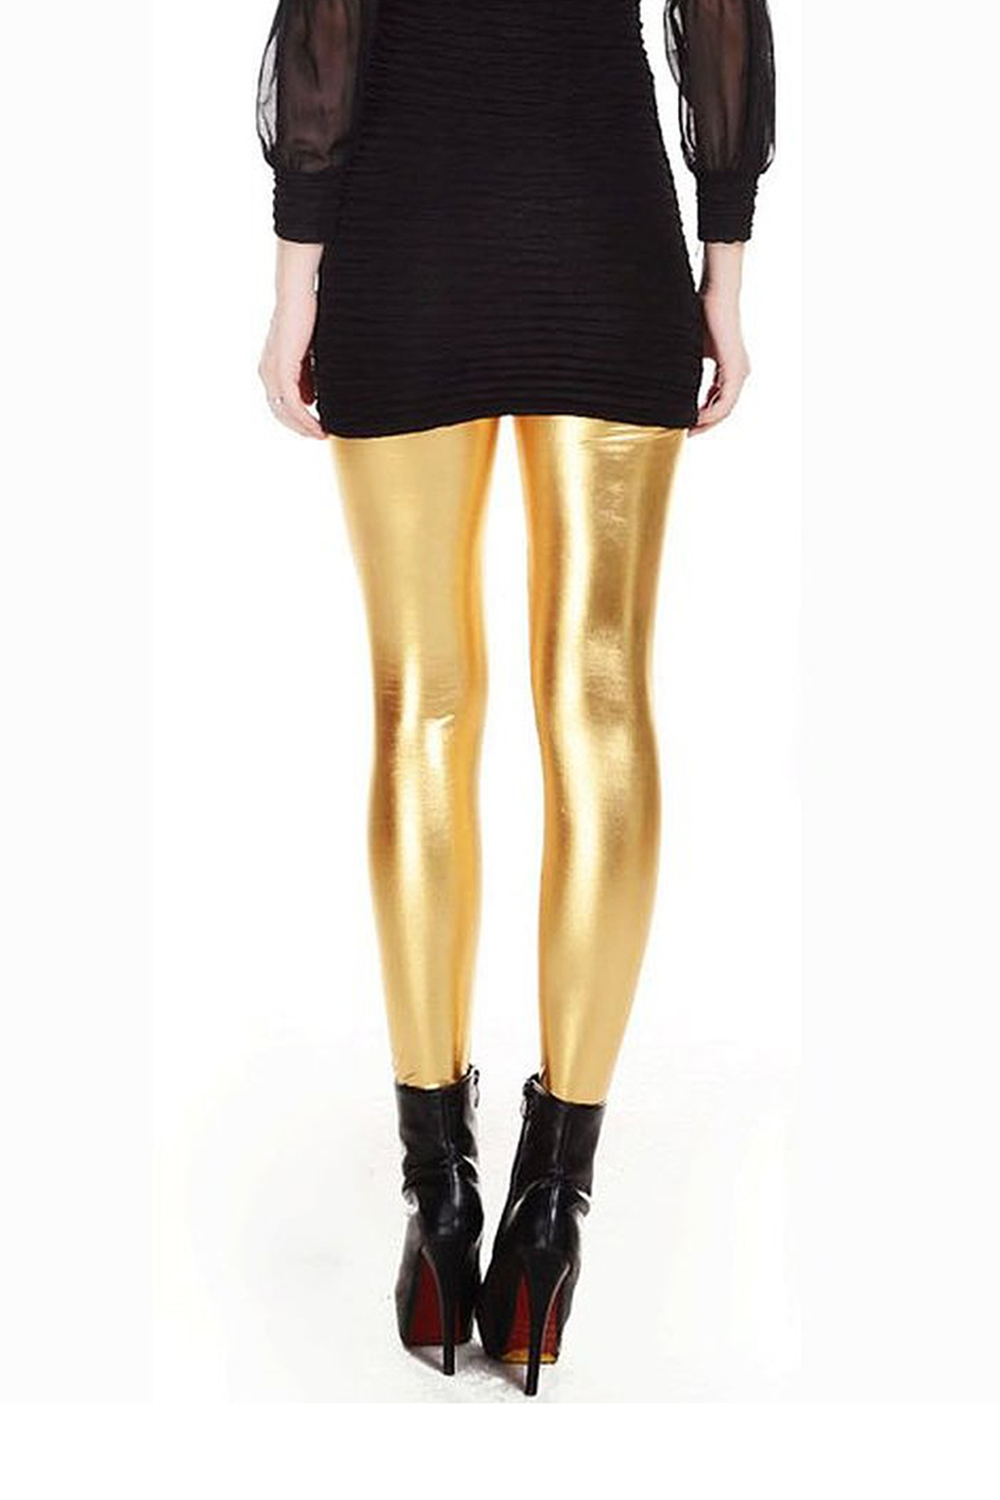 Aug 26,  · Metallic Rainbow Leggings is rated out of 5 by 3. Rated 5 out of 5 by Happyme from Great for men to I got these because of the loud colors and to get people to stare at my old self. I'm over 50 years old and a man/5(3).